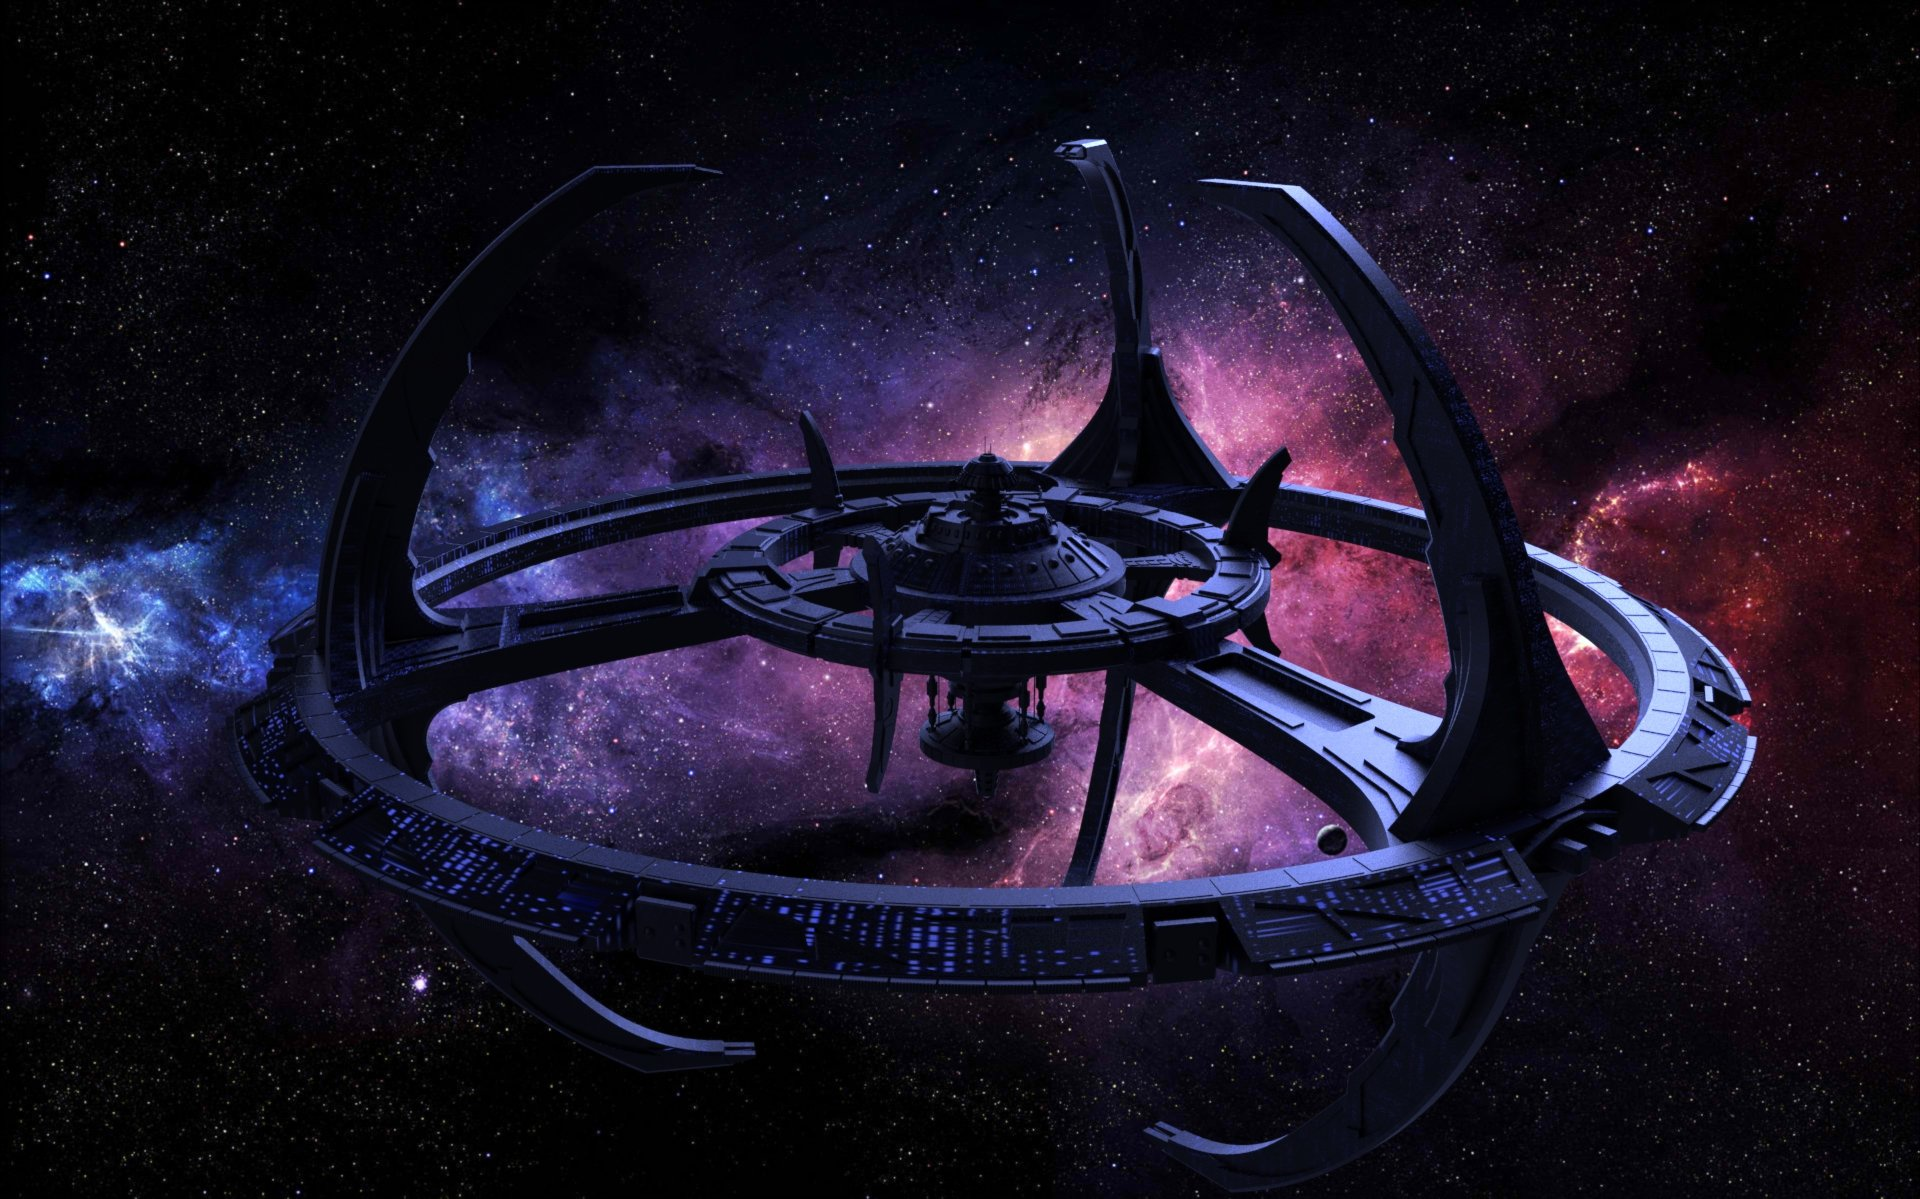 DEEP SPACE NINE Star Trek futuristic television sci fi spaceship 26 1920x1199